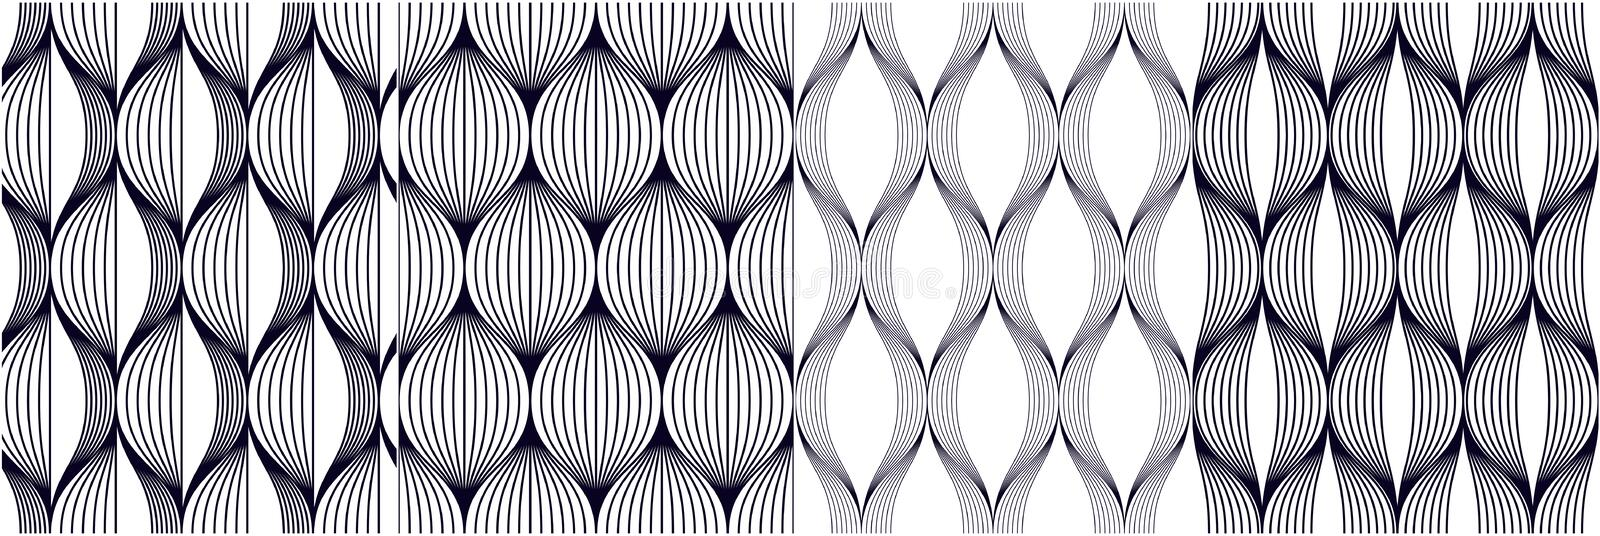 Seamless geometric patterns set. Geometric simple fashion fabric prints. Vector repeating tile textures collection. Wavy curve vector illustration